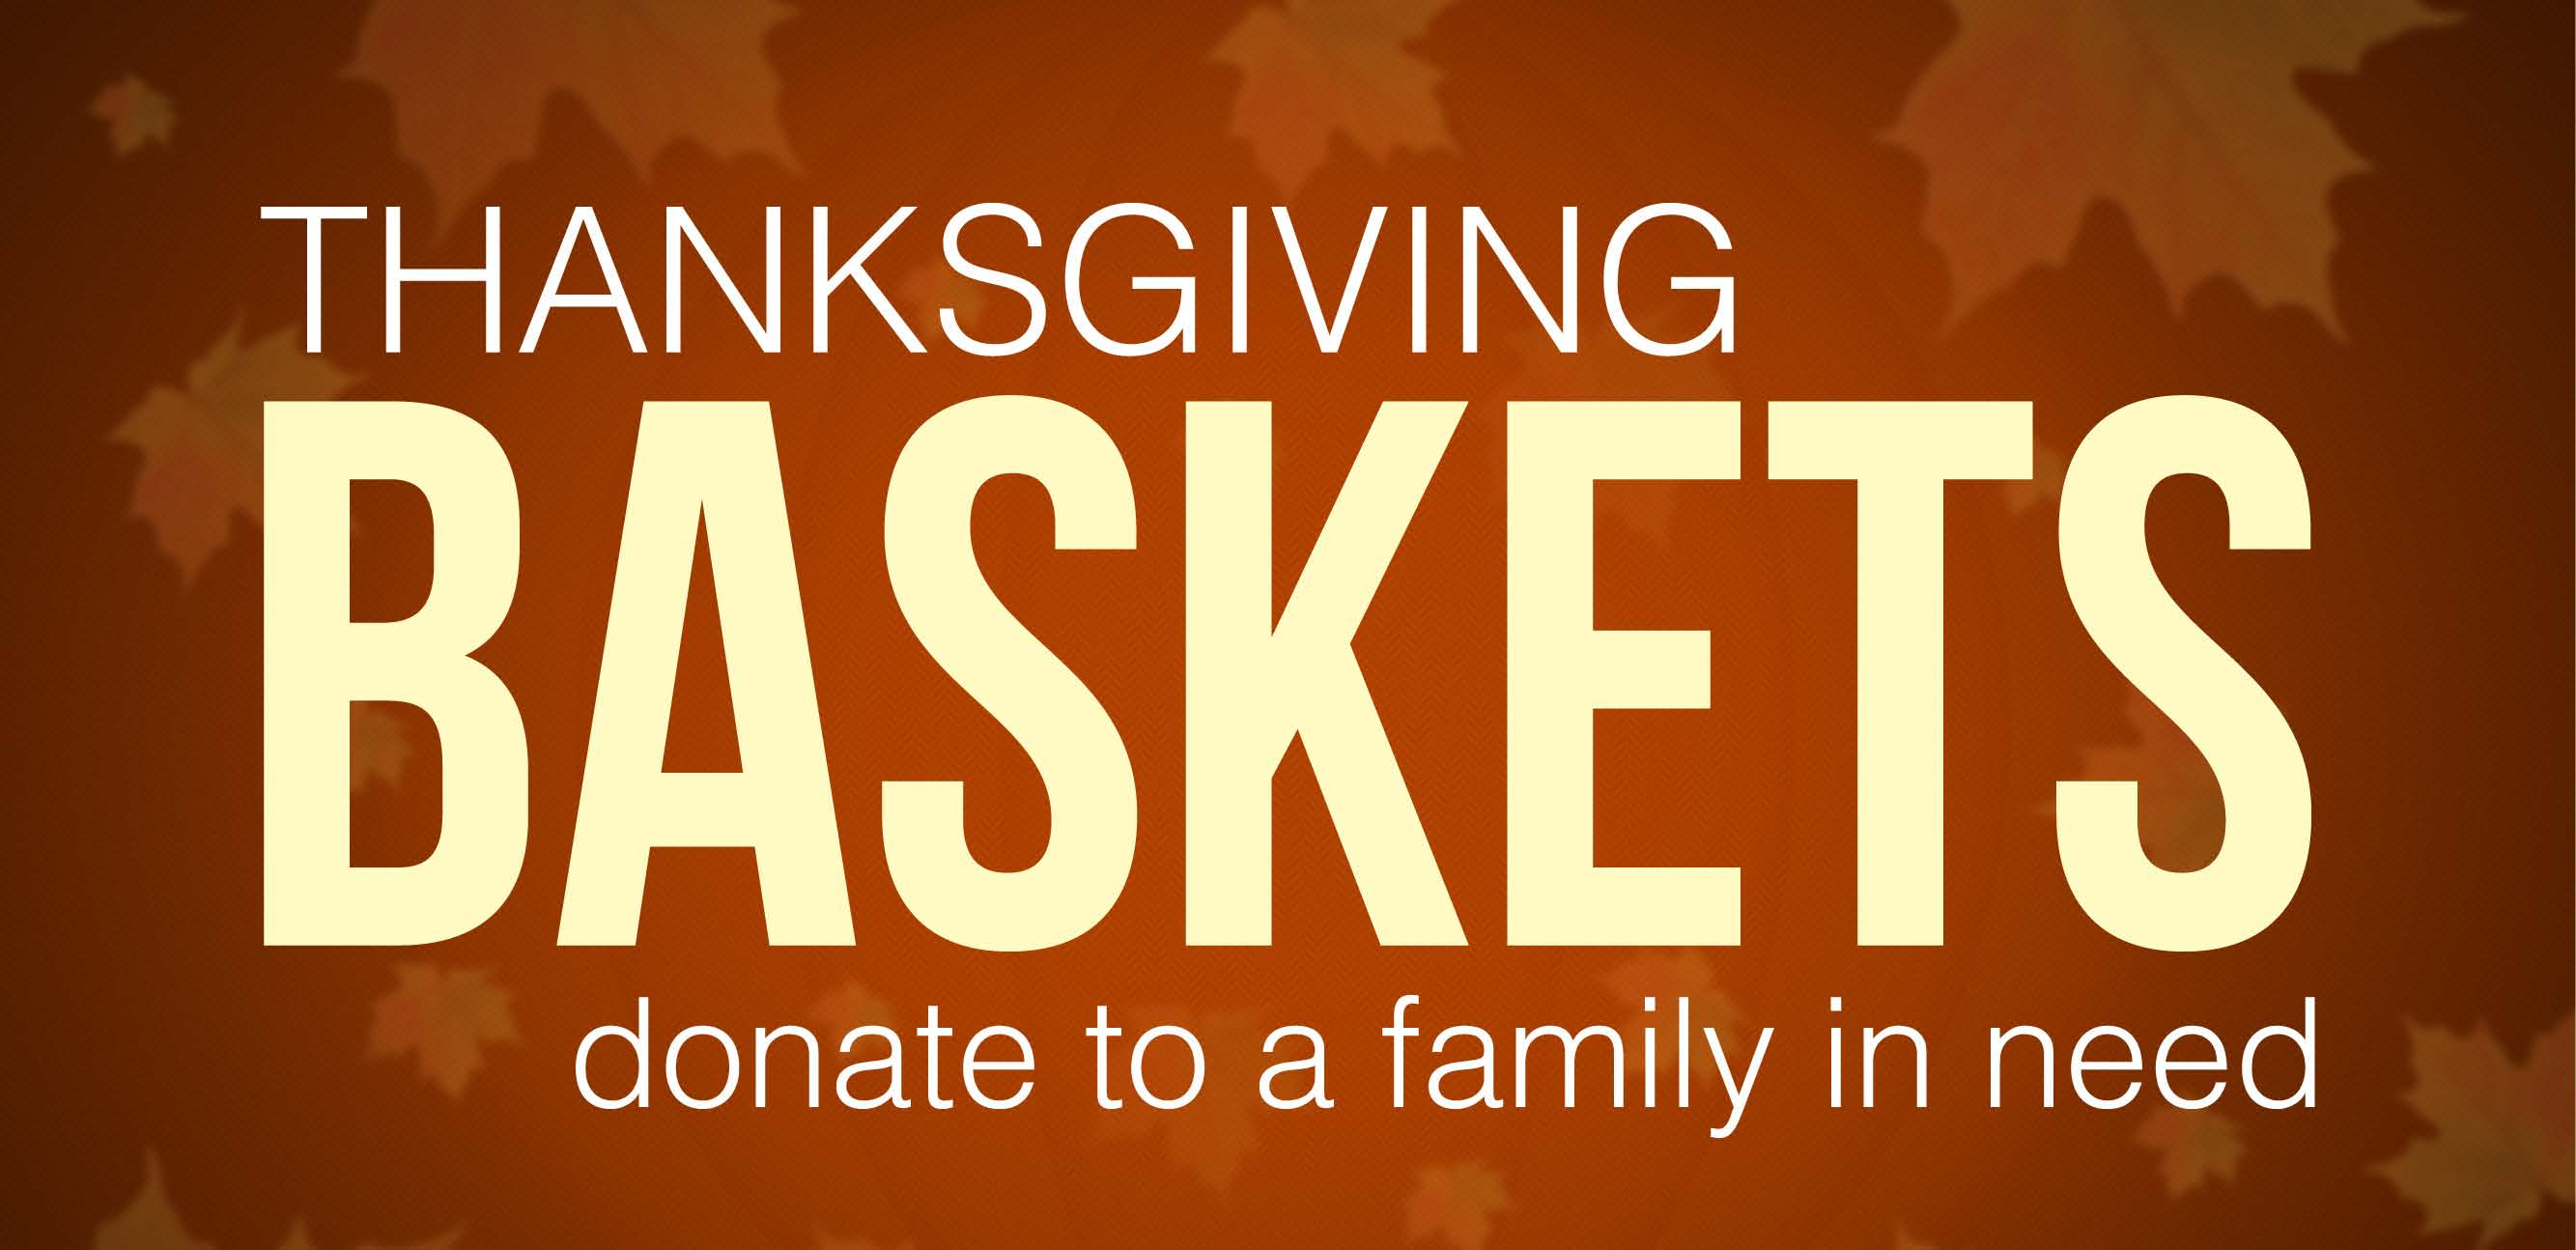 Thanksgiving Basket Partnership Program Seeks Sponsors & Applicants